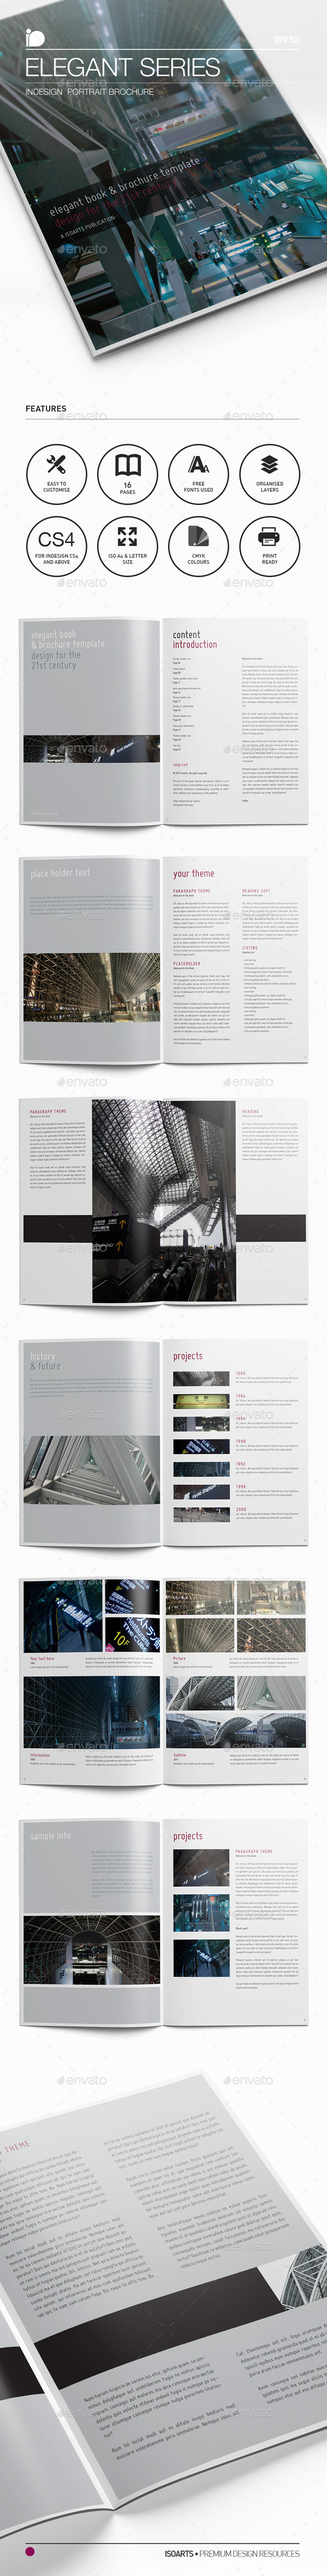 Portrait Brochure • Elegant Series - Corporate Brochures